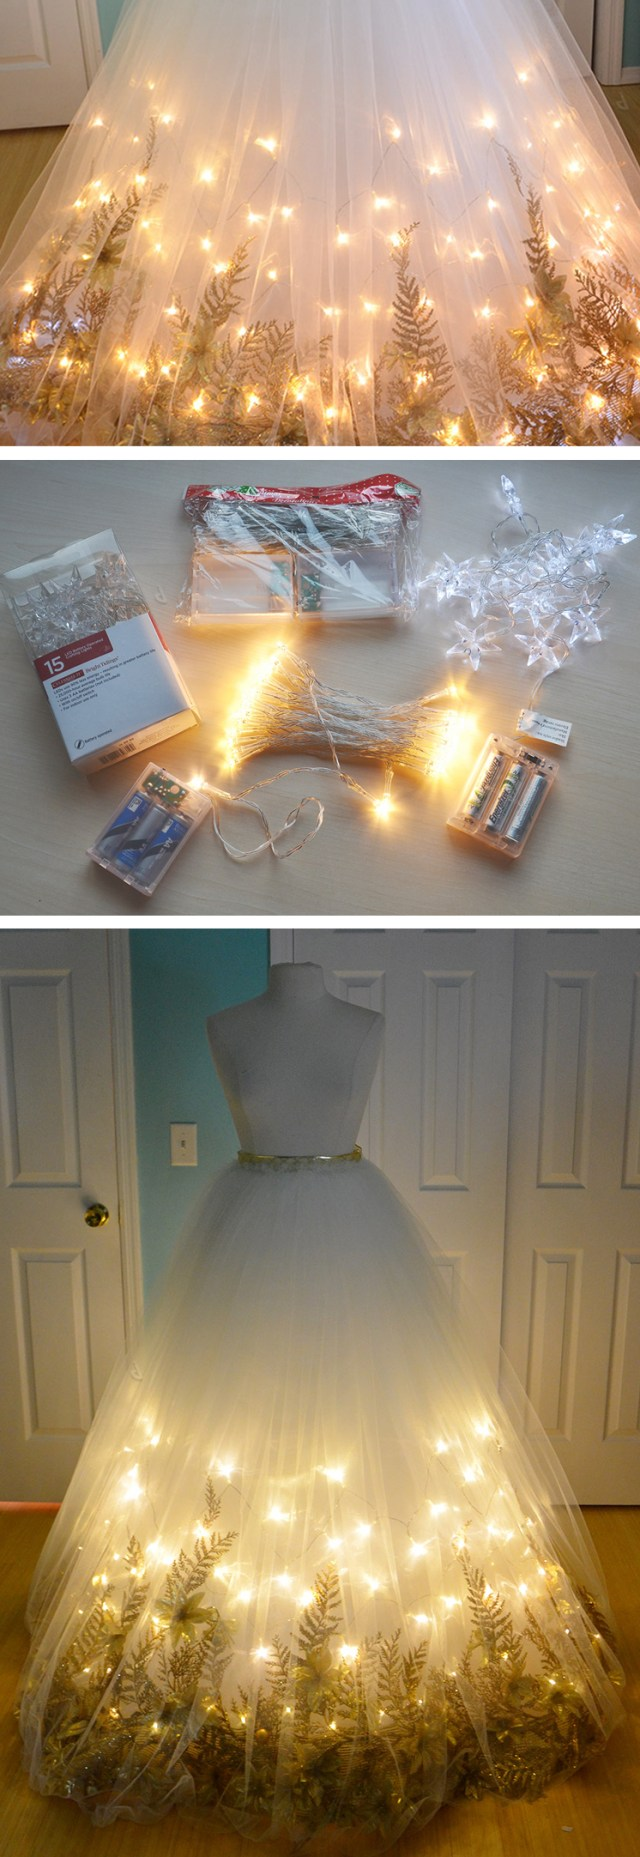 Awesome DIY inspiration - a light up fairy garden dress tutorial! #product_design #design_inspiration